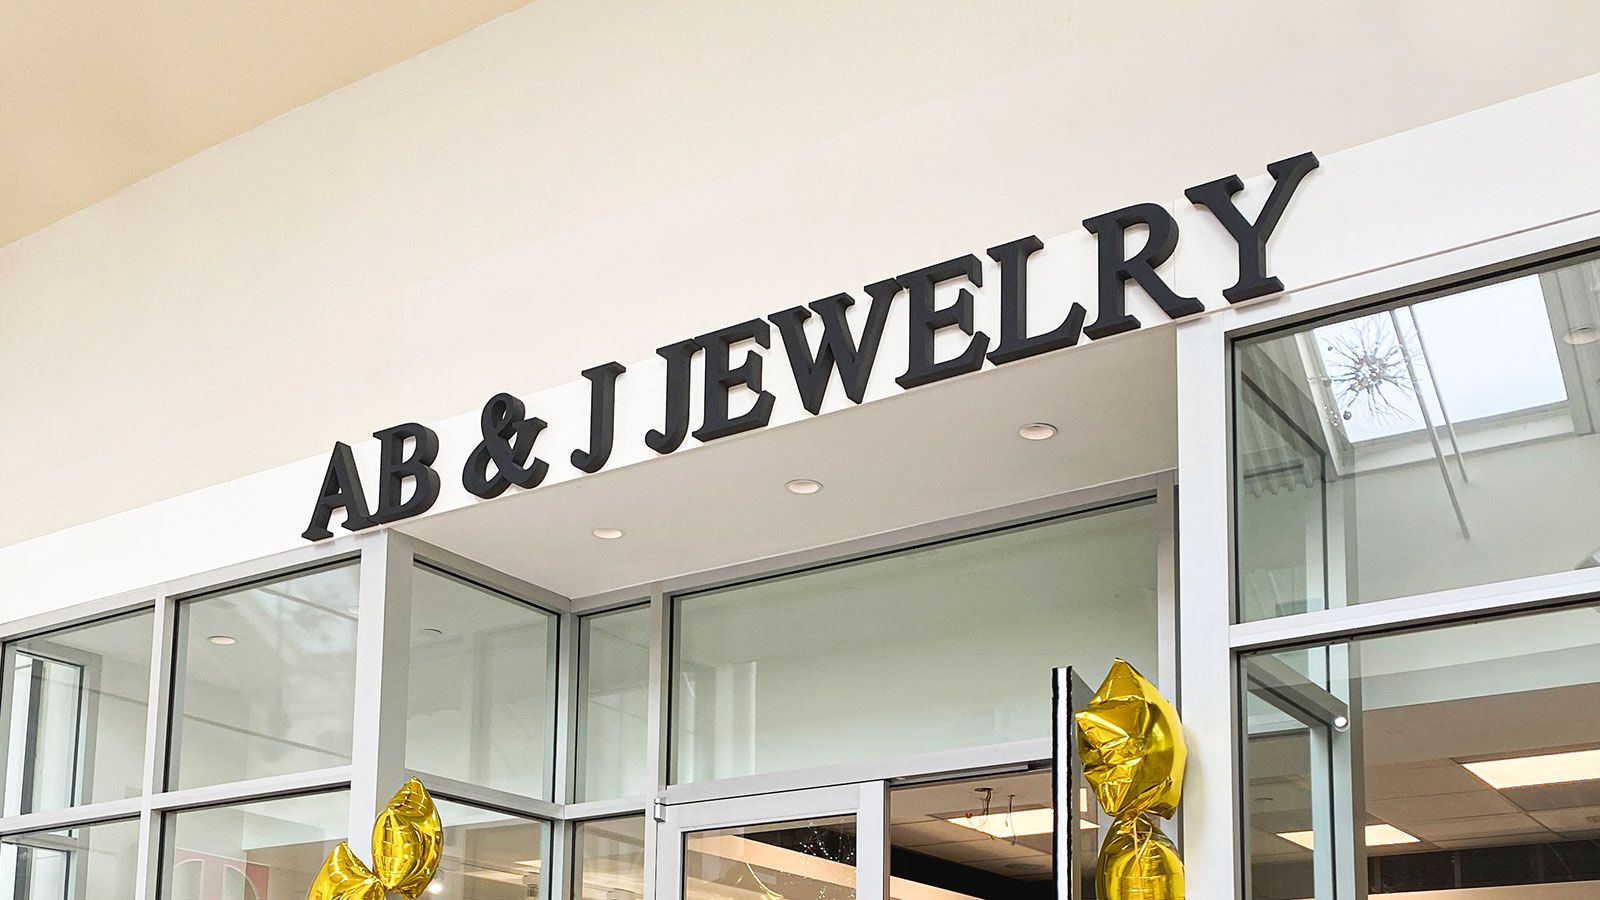 Jewelry store 3d letters